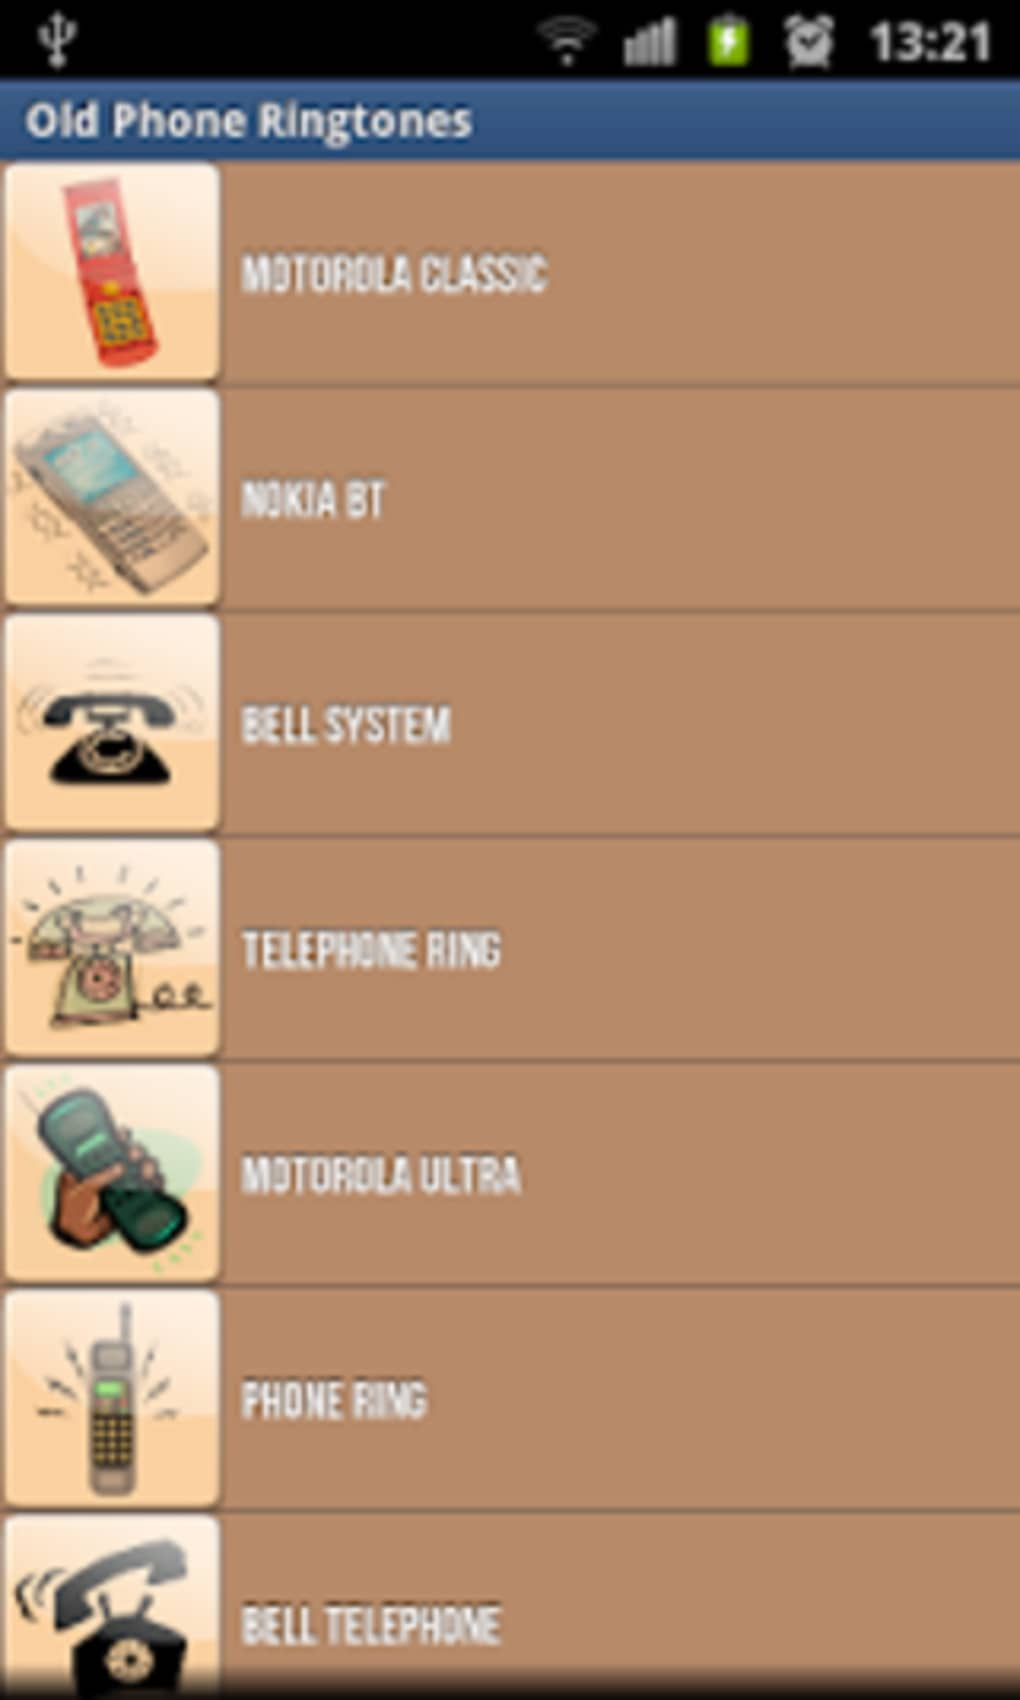 Old Phone Ringtones for Android - Download